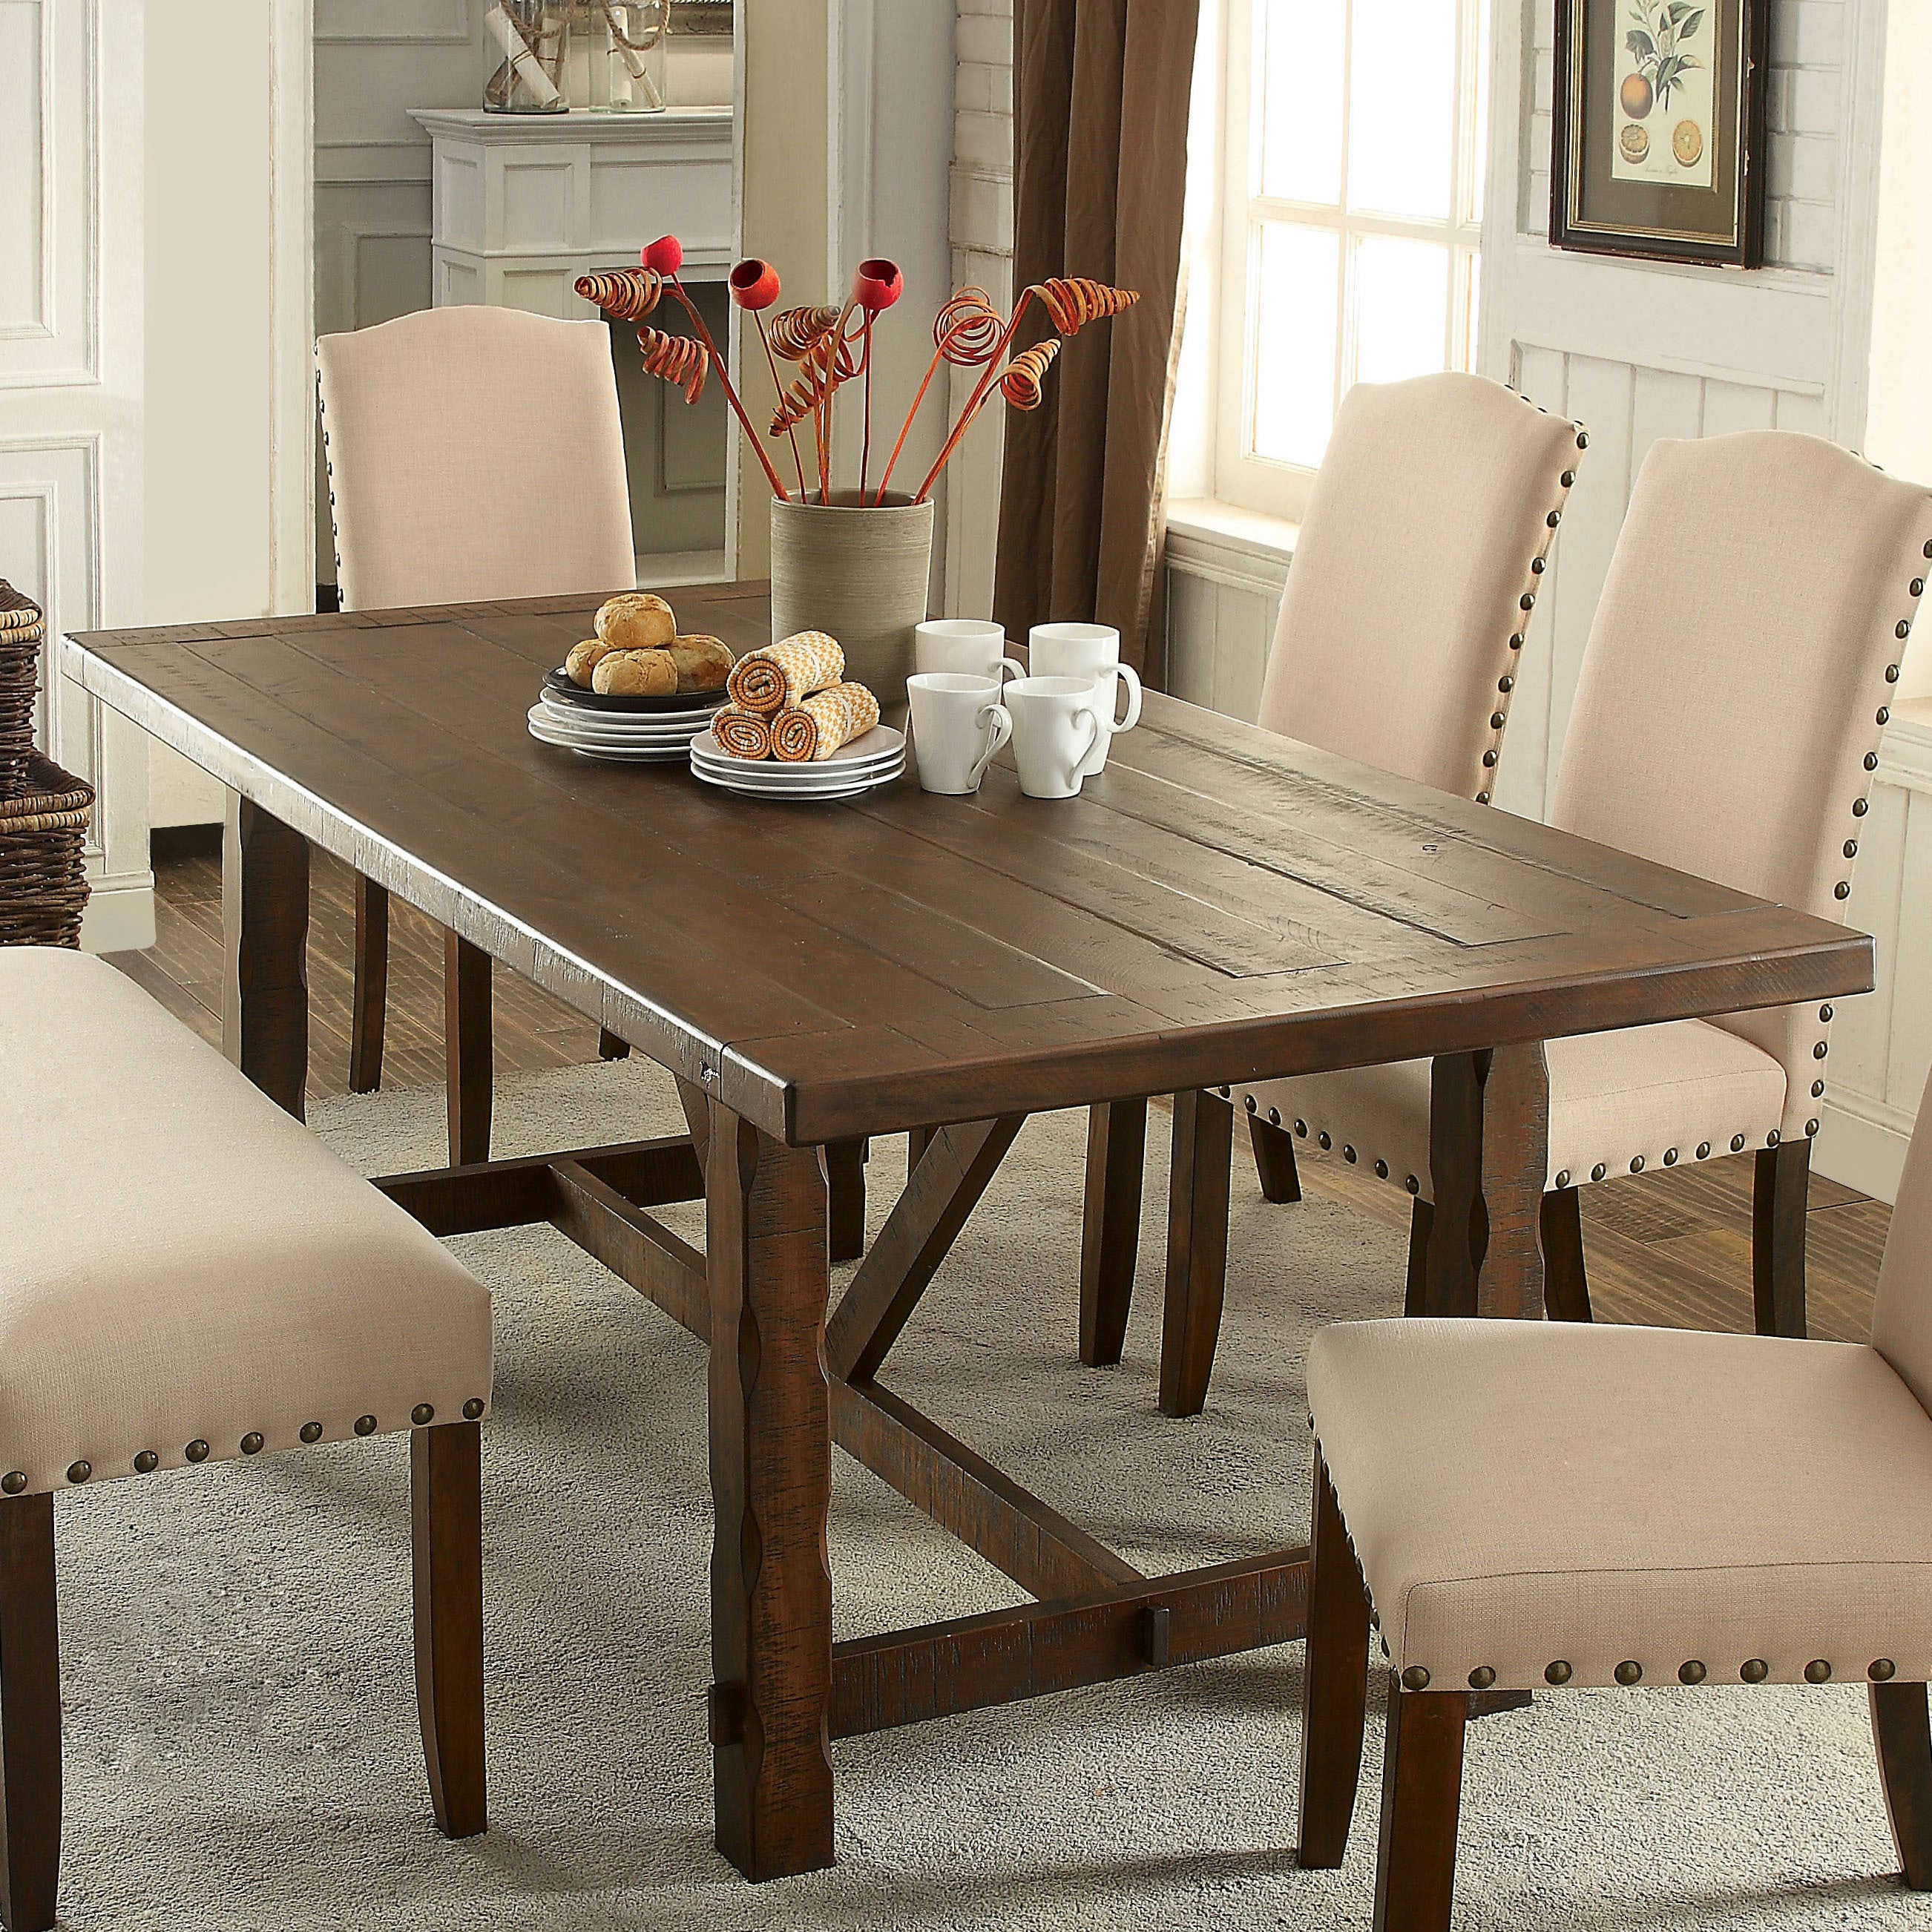 Furniture Of America Felicity Transitional Walnut 74 Inch Dining Table Overstock 10362313